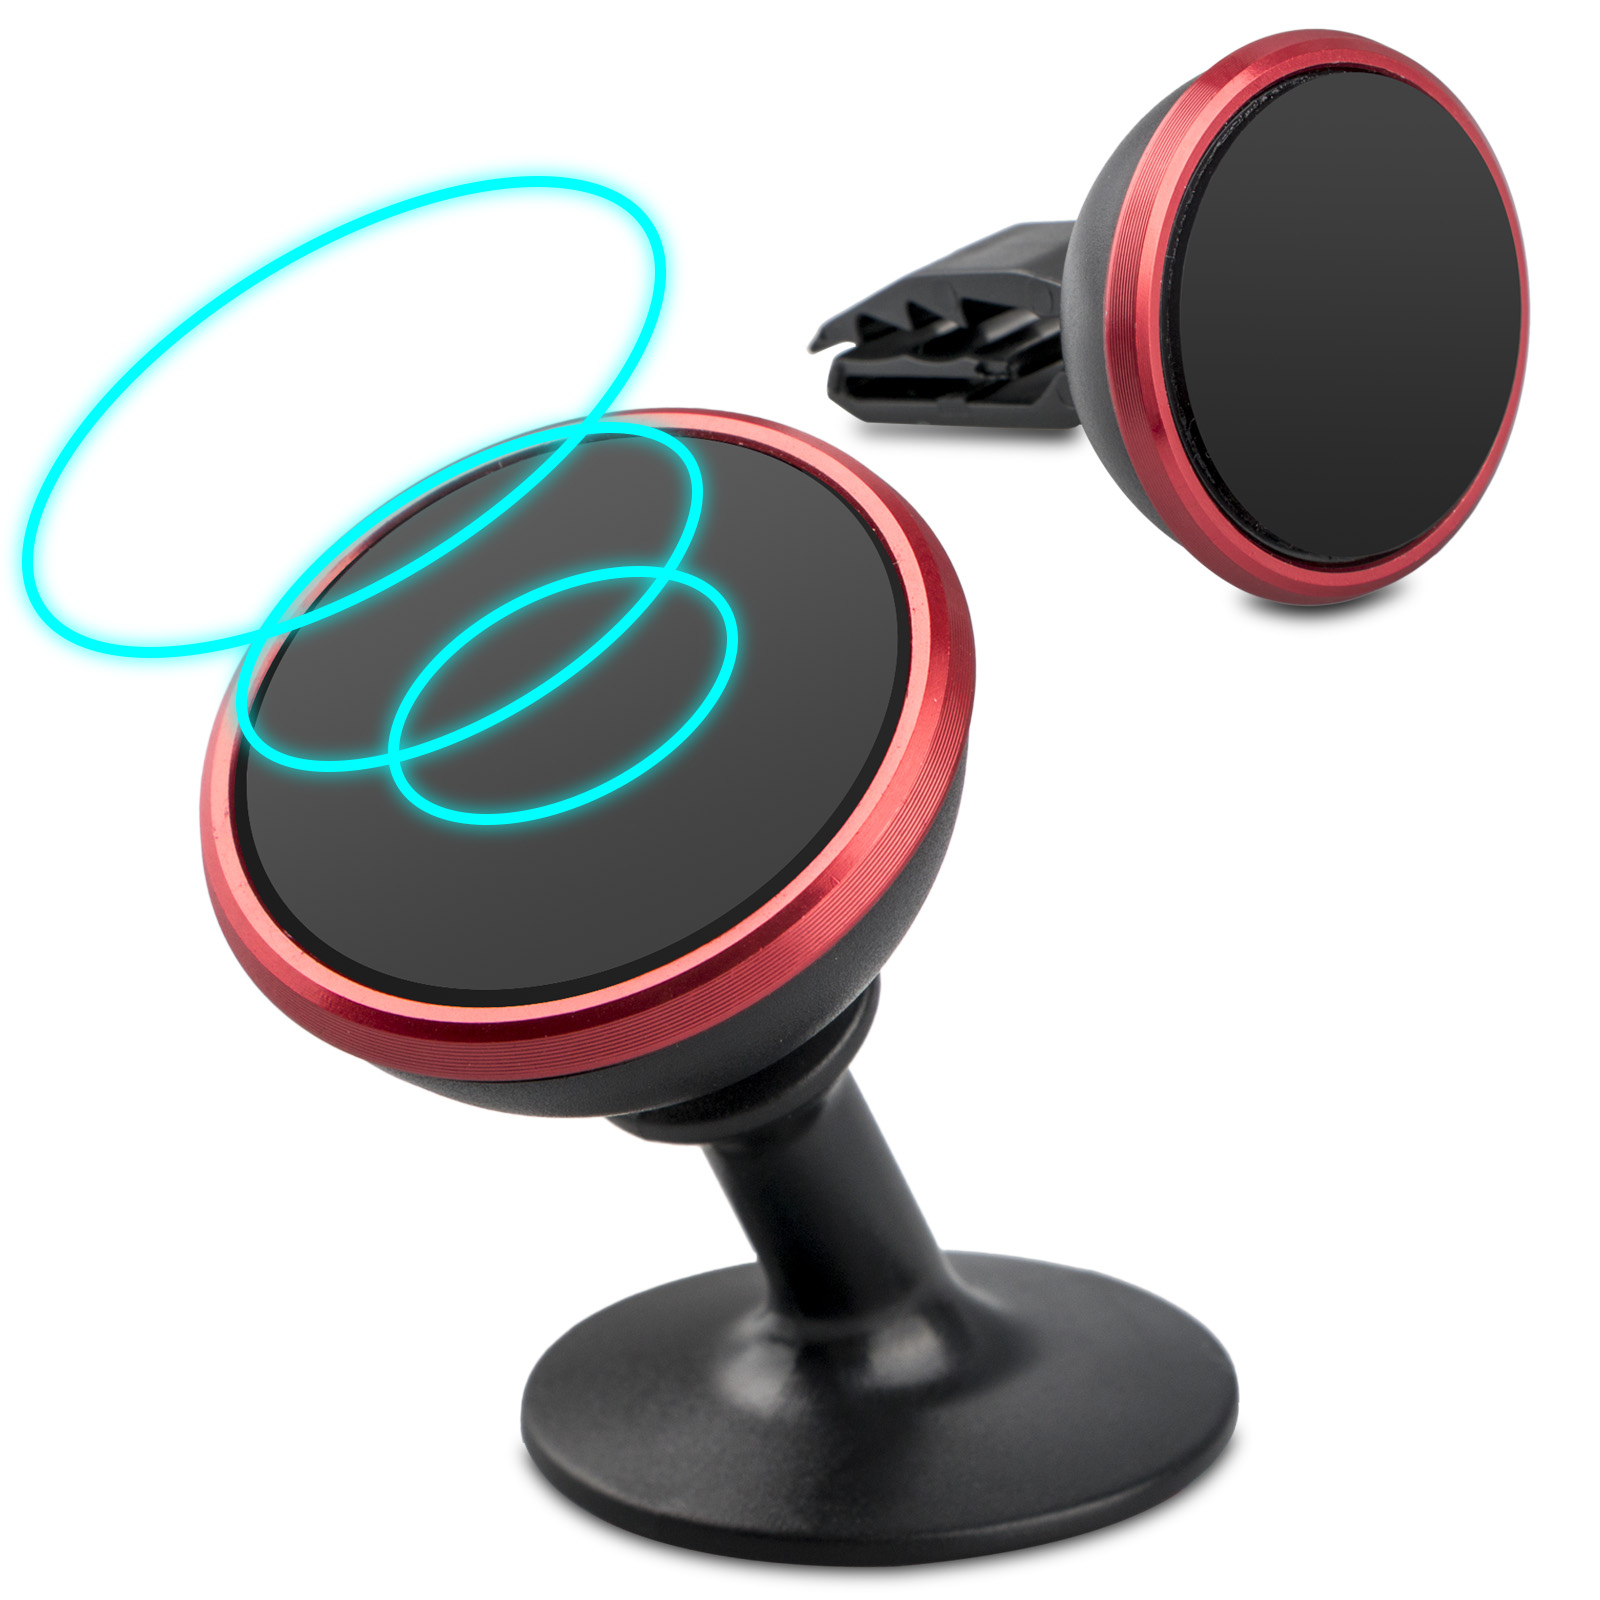 Universal Magnetic Cell Phone Holder for Car, Upgraded 360 Degree  Magnetic Car Phone Mount for Dashboard Tablet GPS iPhone X 8 7 Plus Samsung Note 8 Galaxy S8 Plus S7 Edge and More